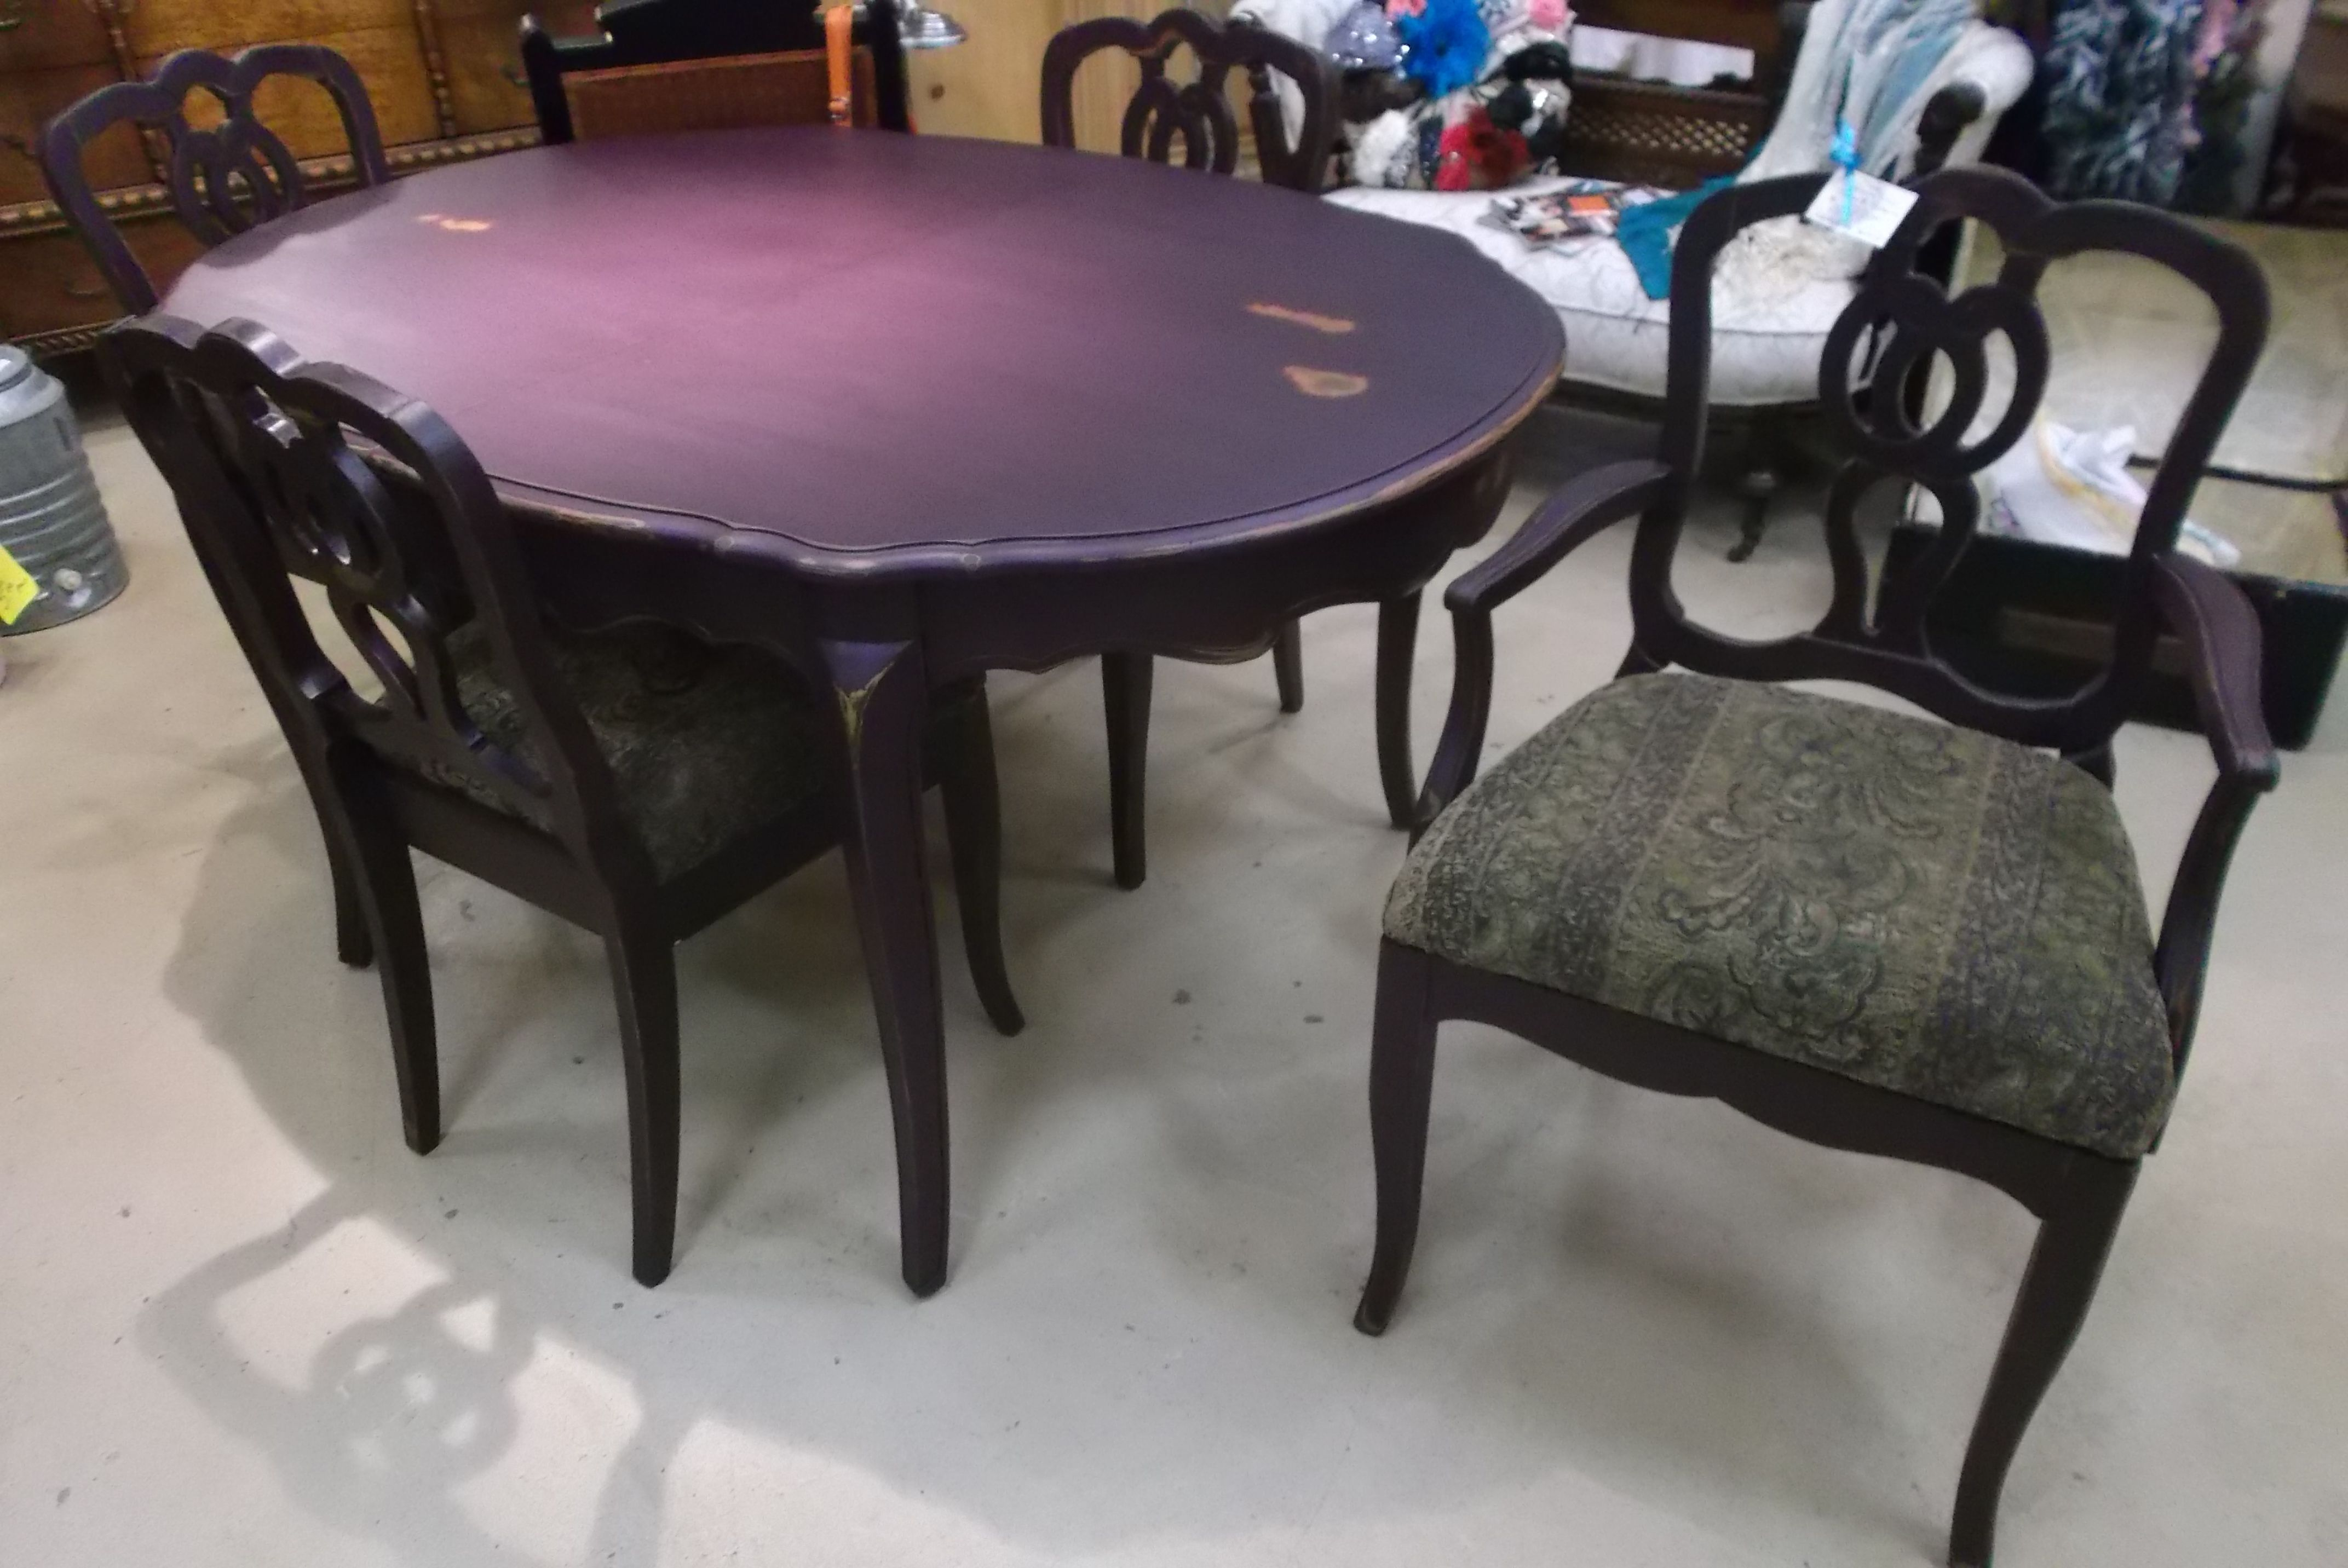 A blah 1950 s dining table and chairs is given a double dose of